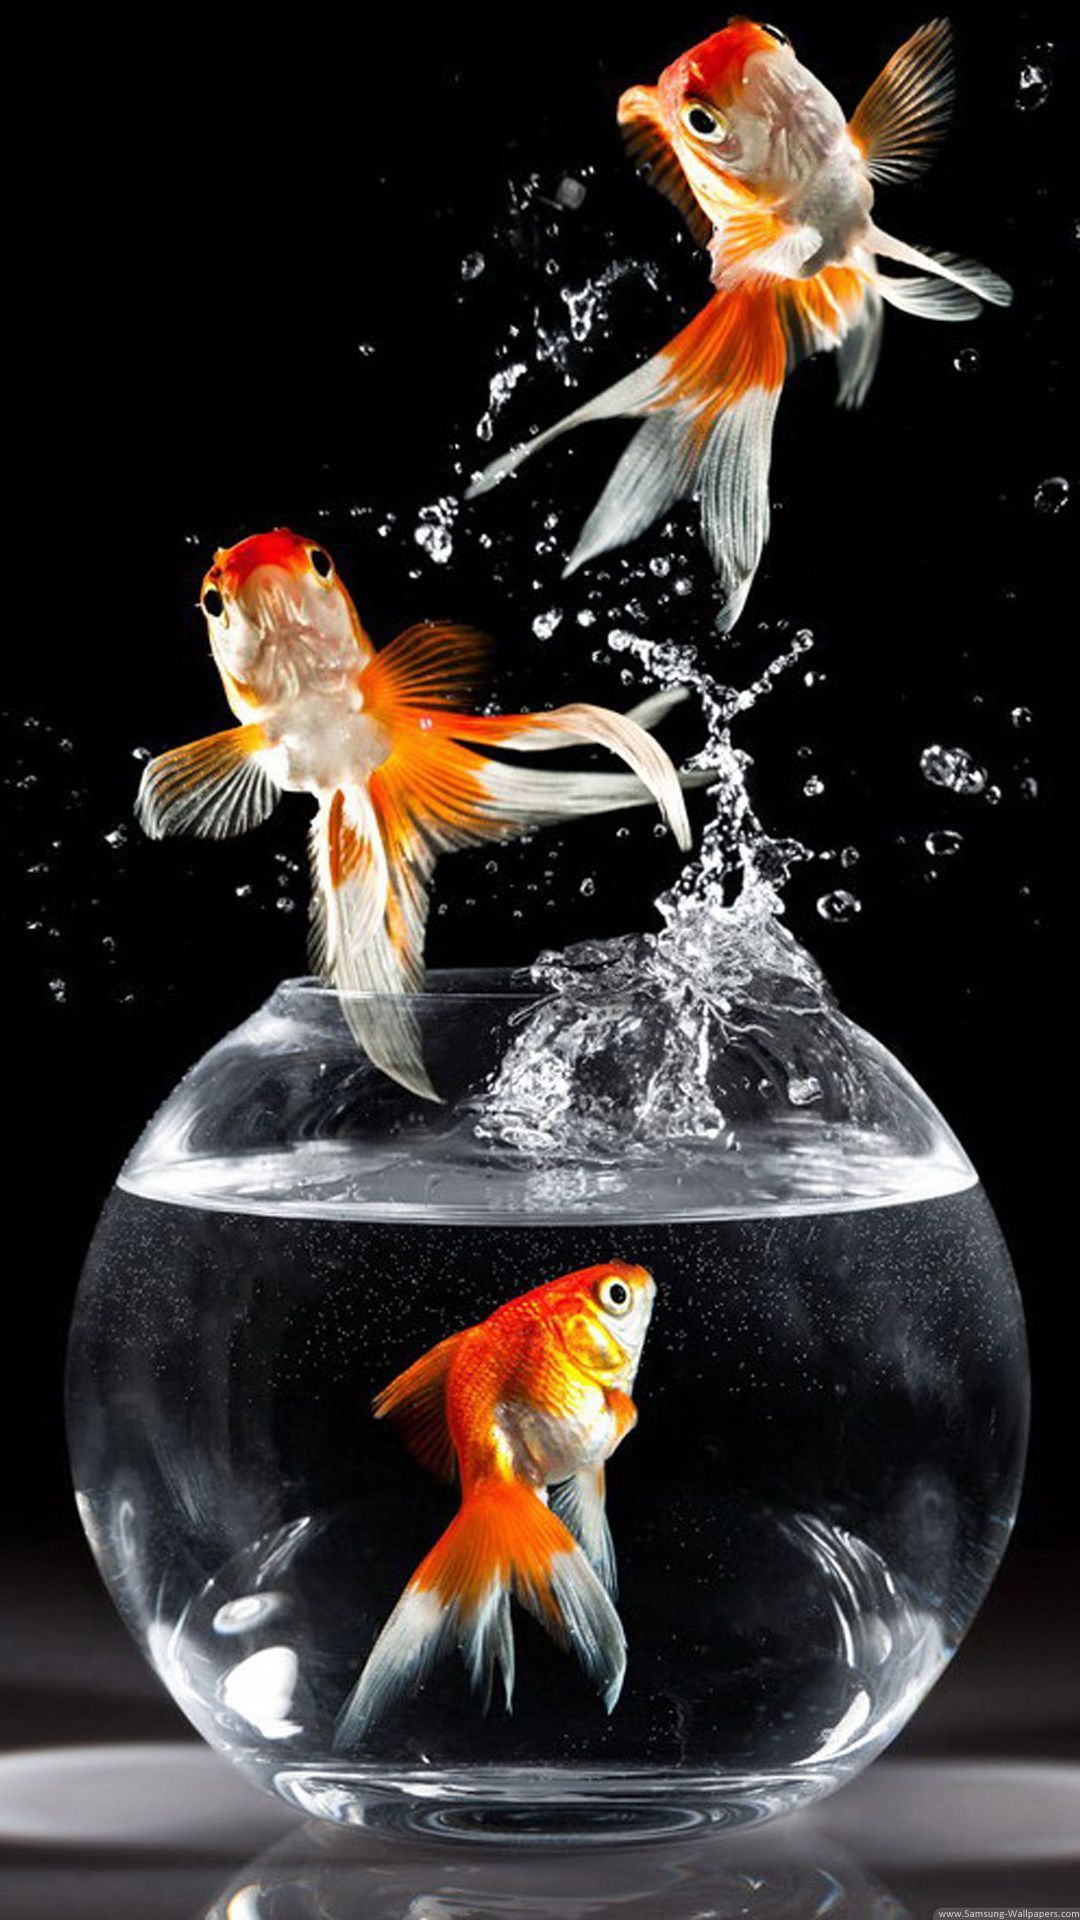 Goldfish Android Iphone Desktop Hd Backgrounds Wallpapers 1080p 4k 104414 Hdwallpapers Androidwallp Goldfish Wallpaper Fish Wallpaper Golden Fish